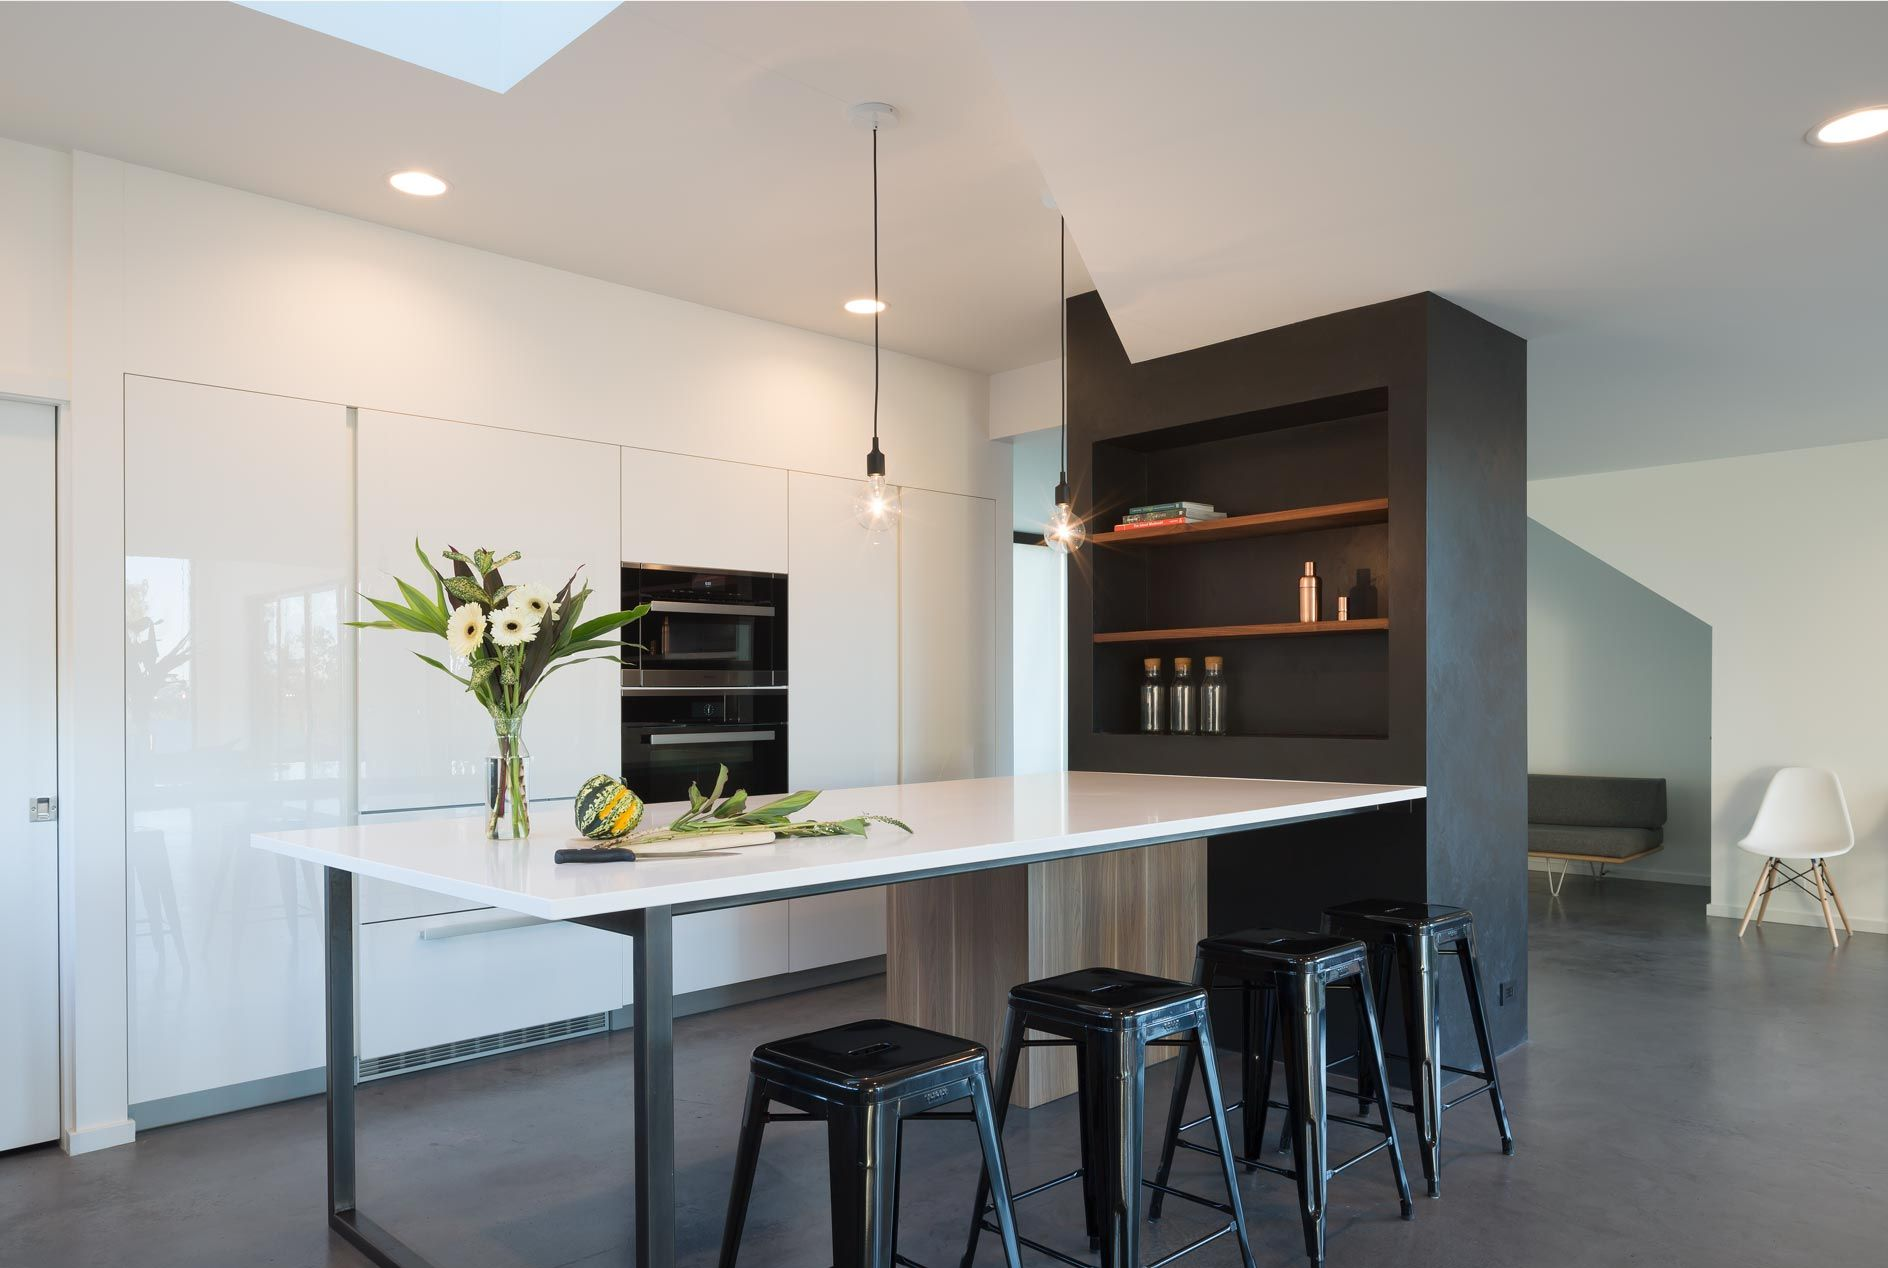 Modern Seattle Home Finds Creative Ways to